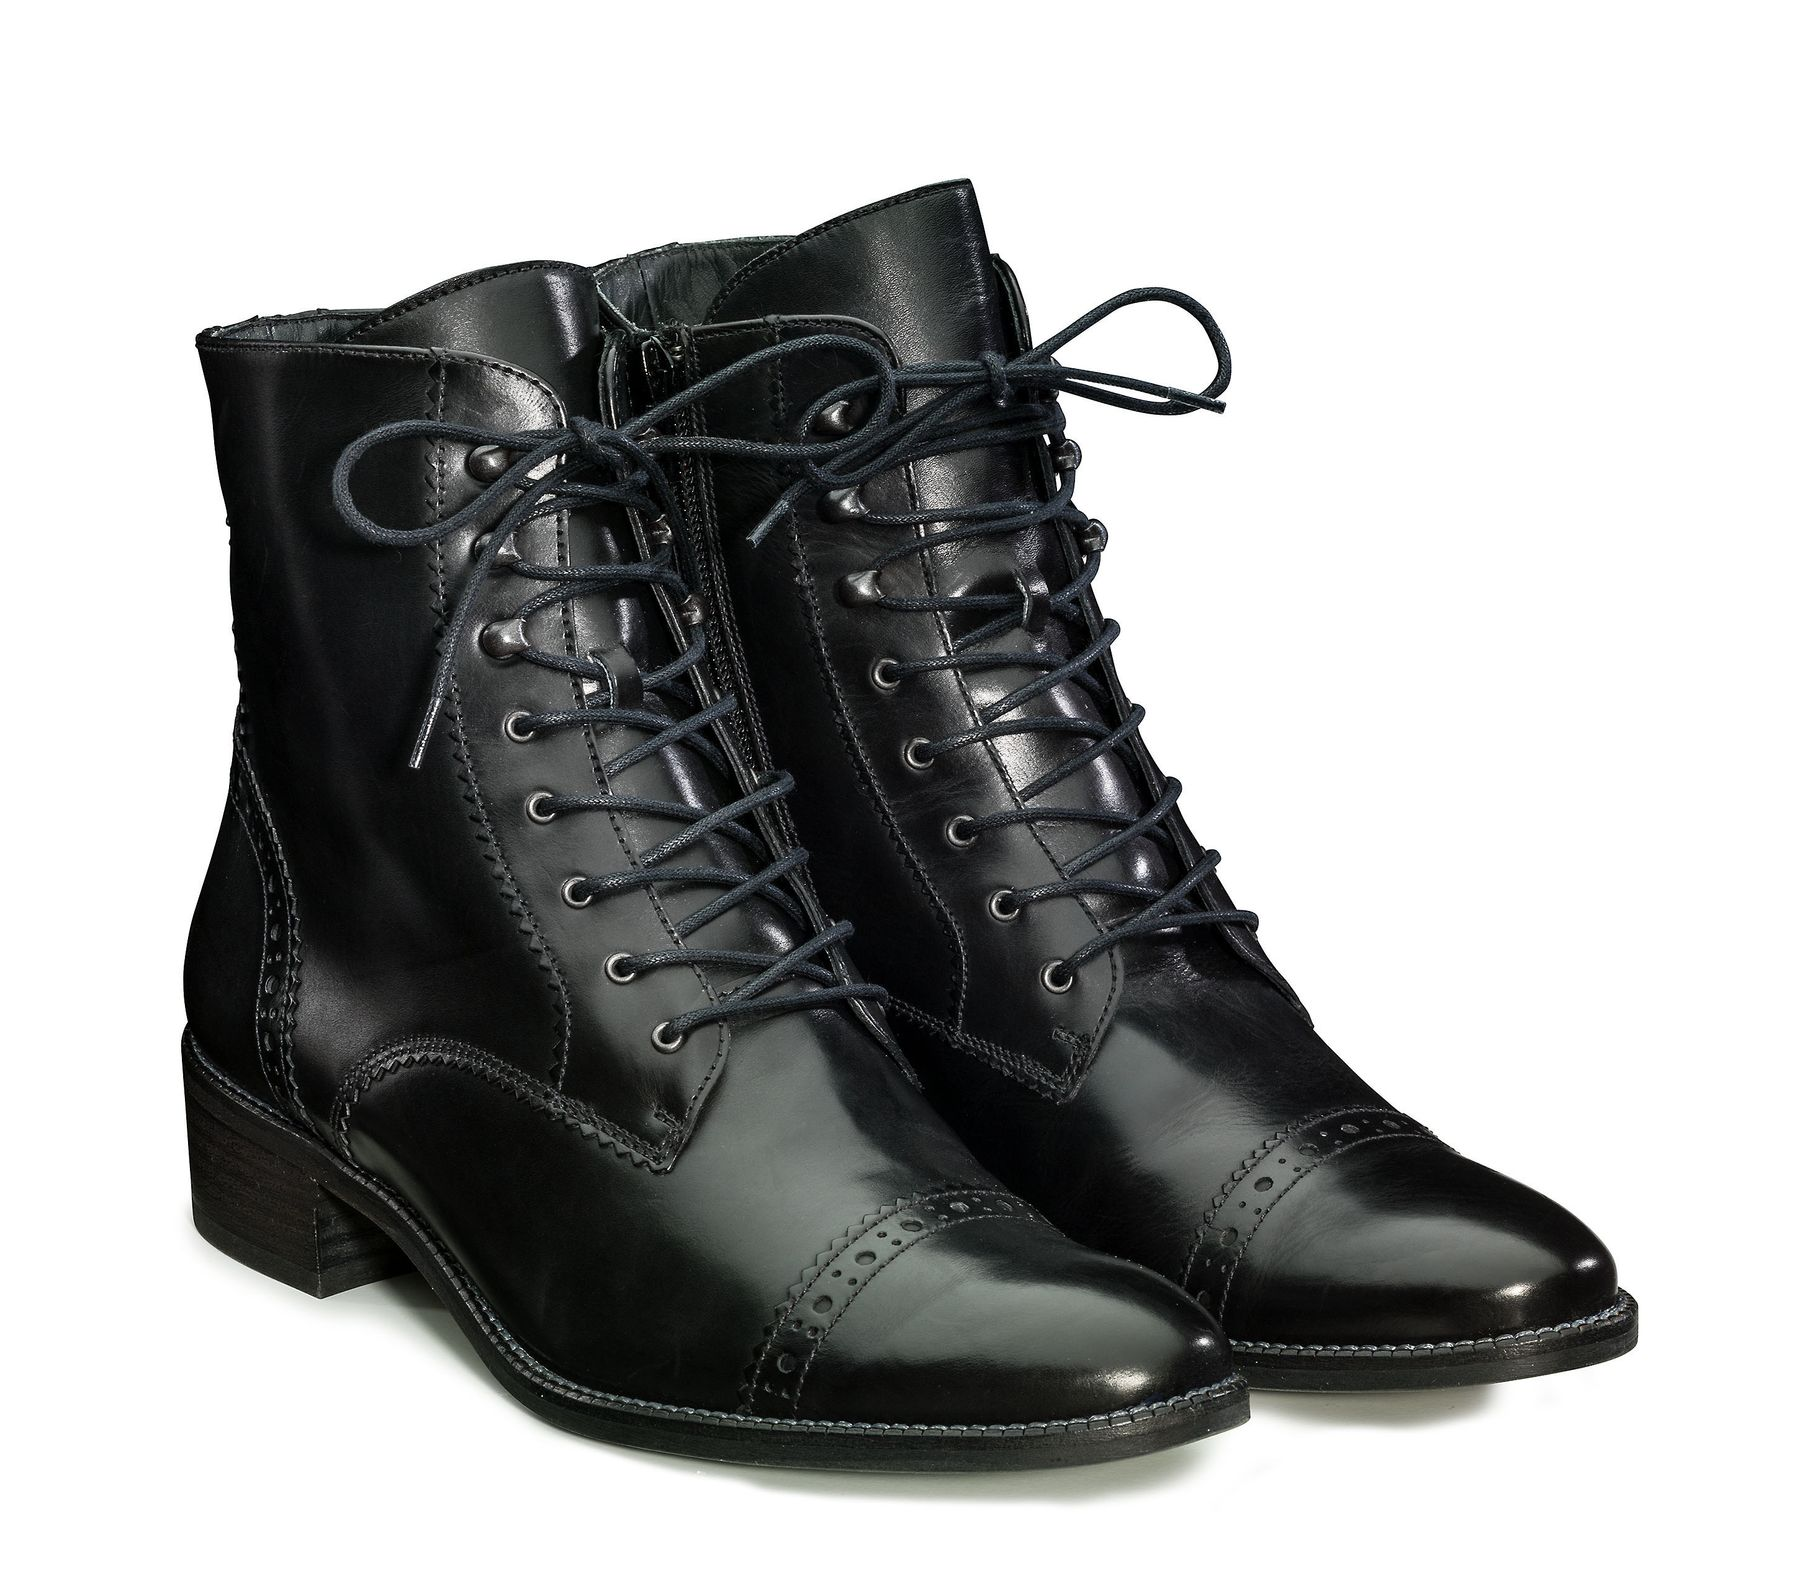 Lace-up ankle boots for women in black